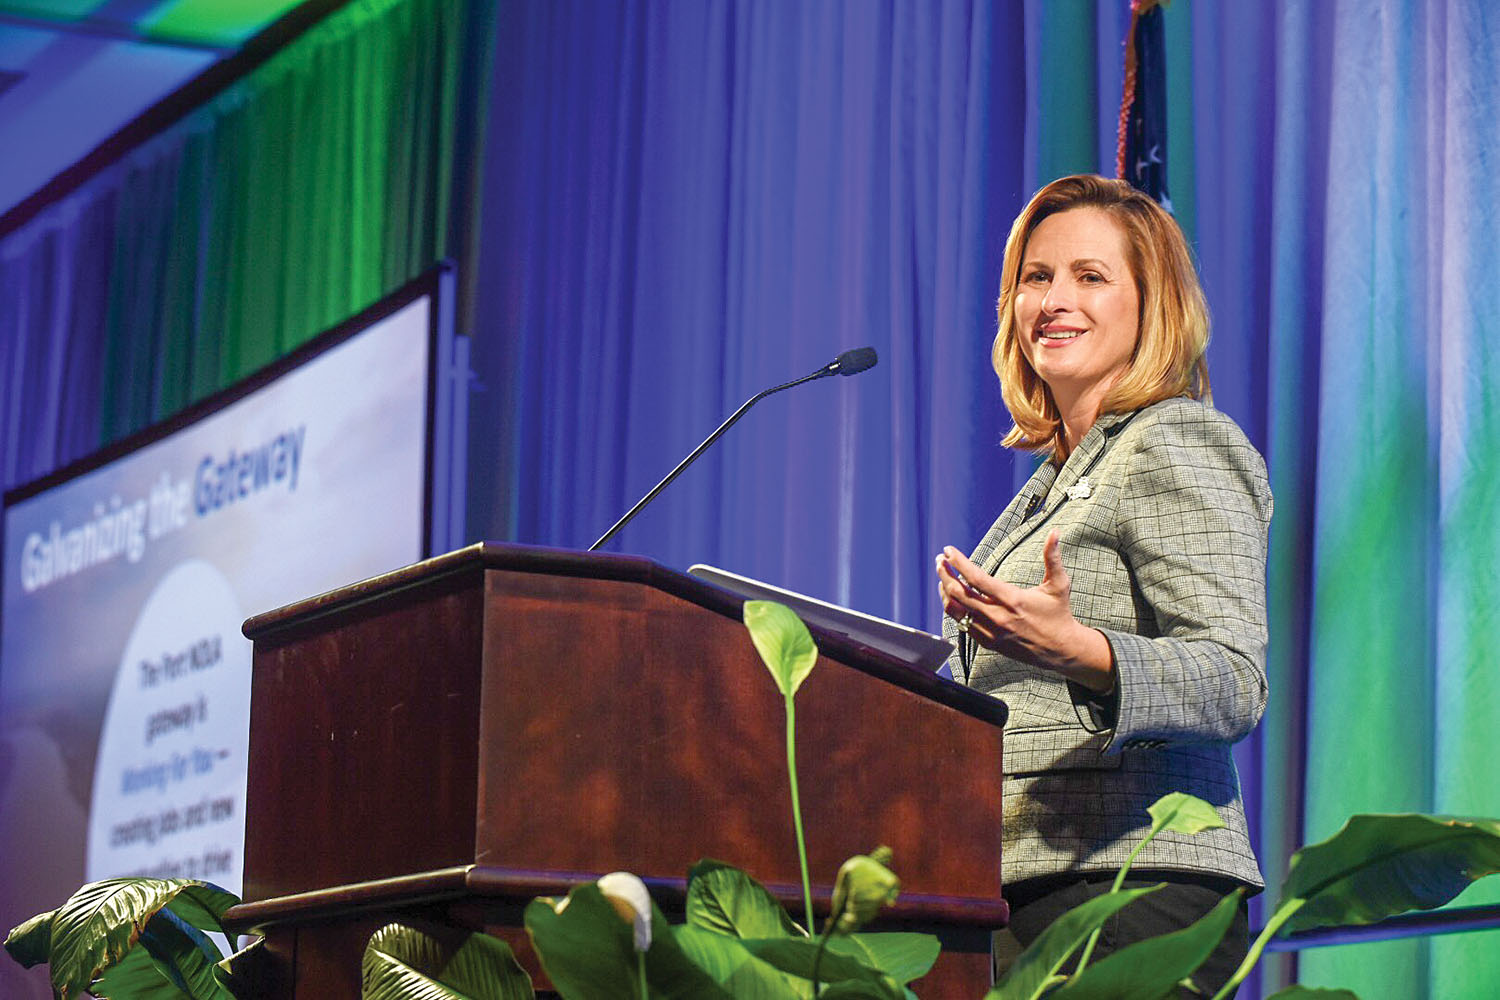 Brandy Christian gives the State of the Port address (Port of New Orleans photo)